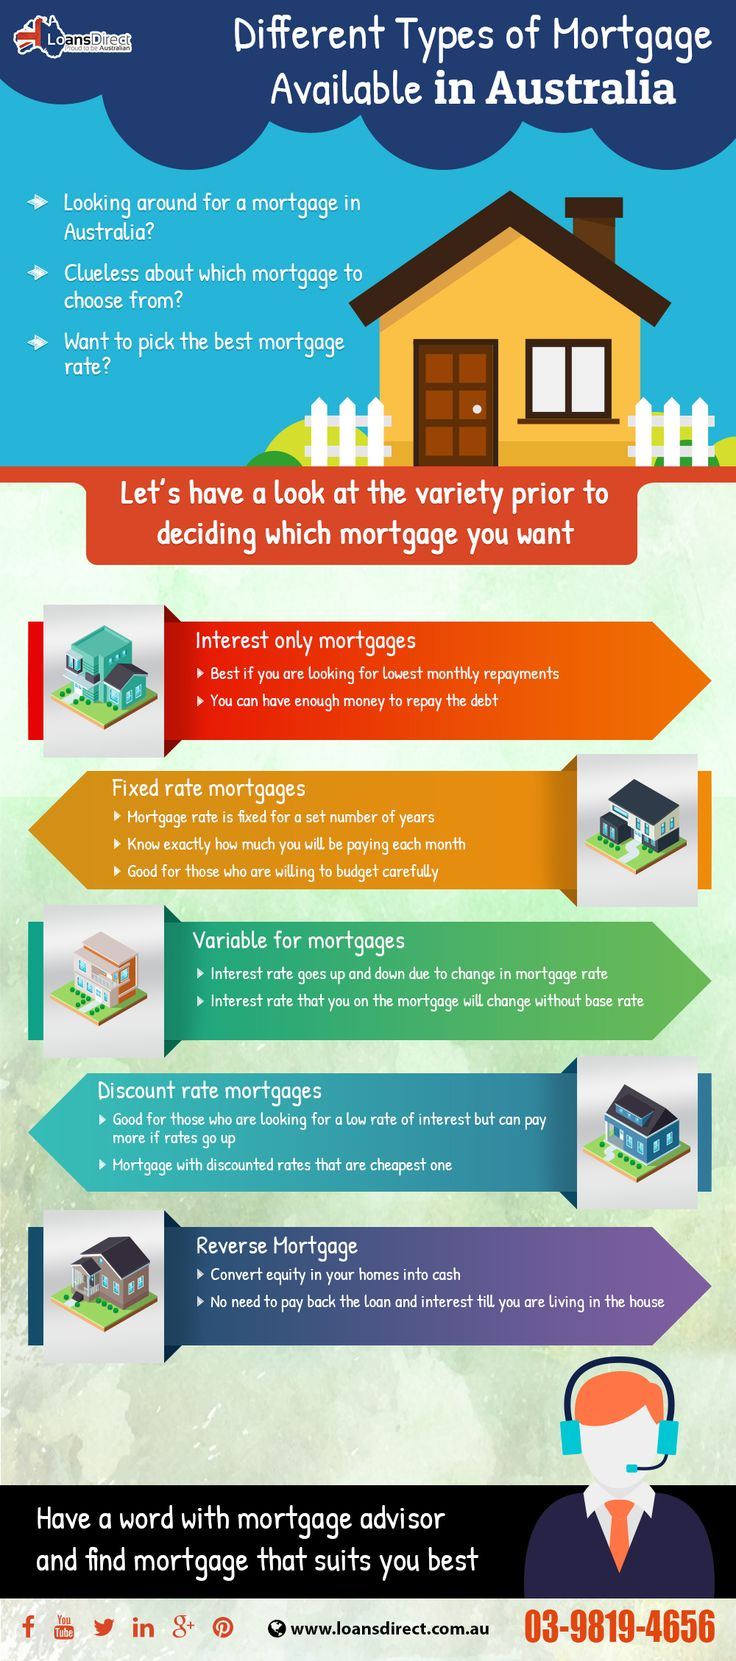 Different Types of Mortgage Available in Australia http://www.loansdirect.com.au/